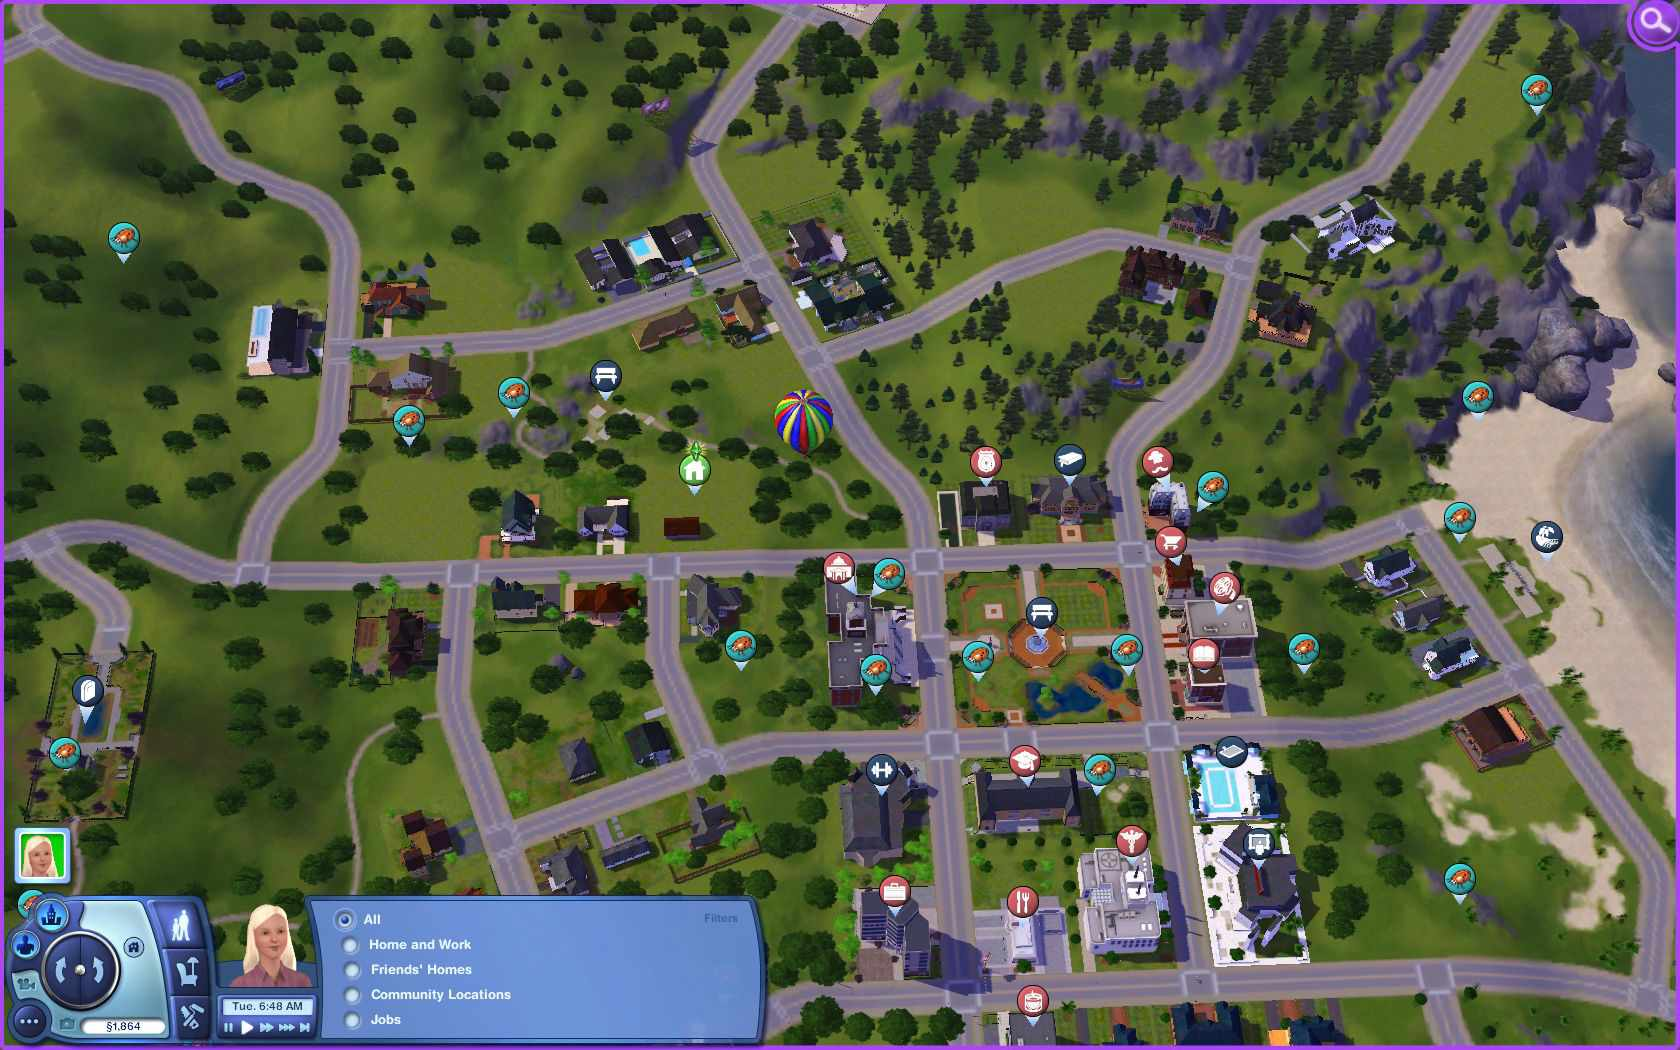 The Sims 3 Collecting Guide - Collection Helper Maps